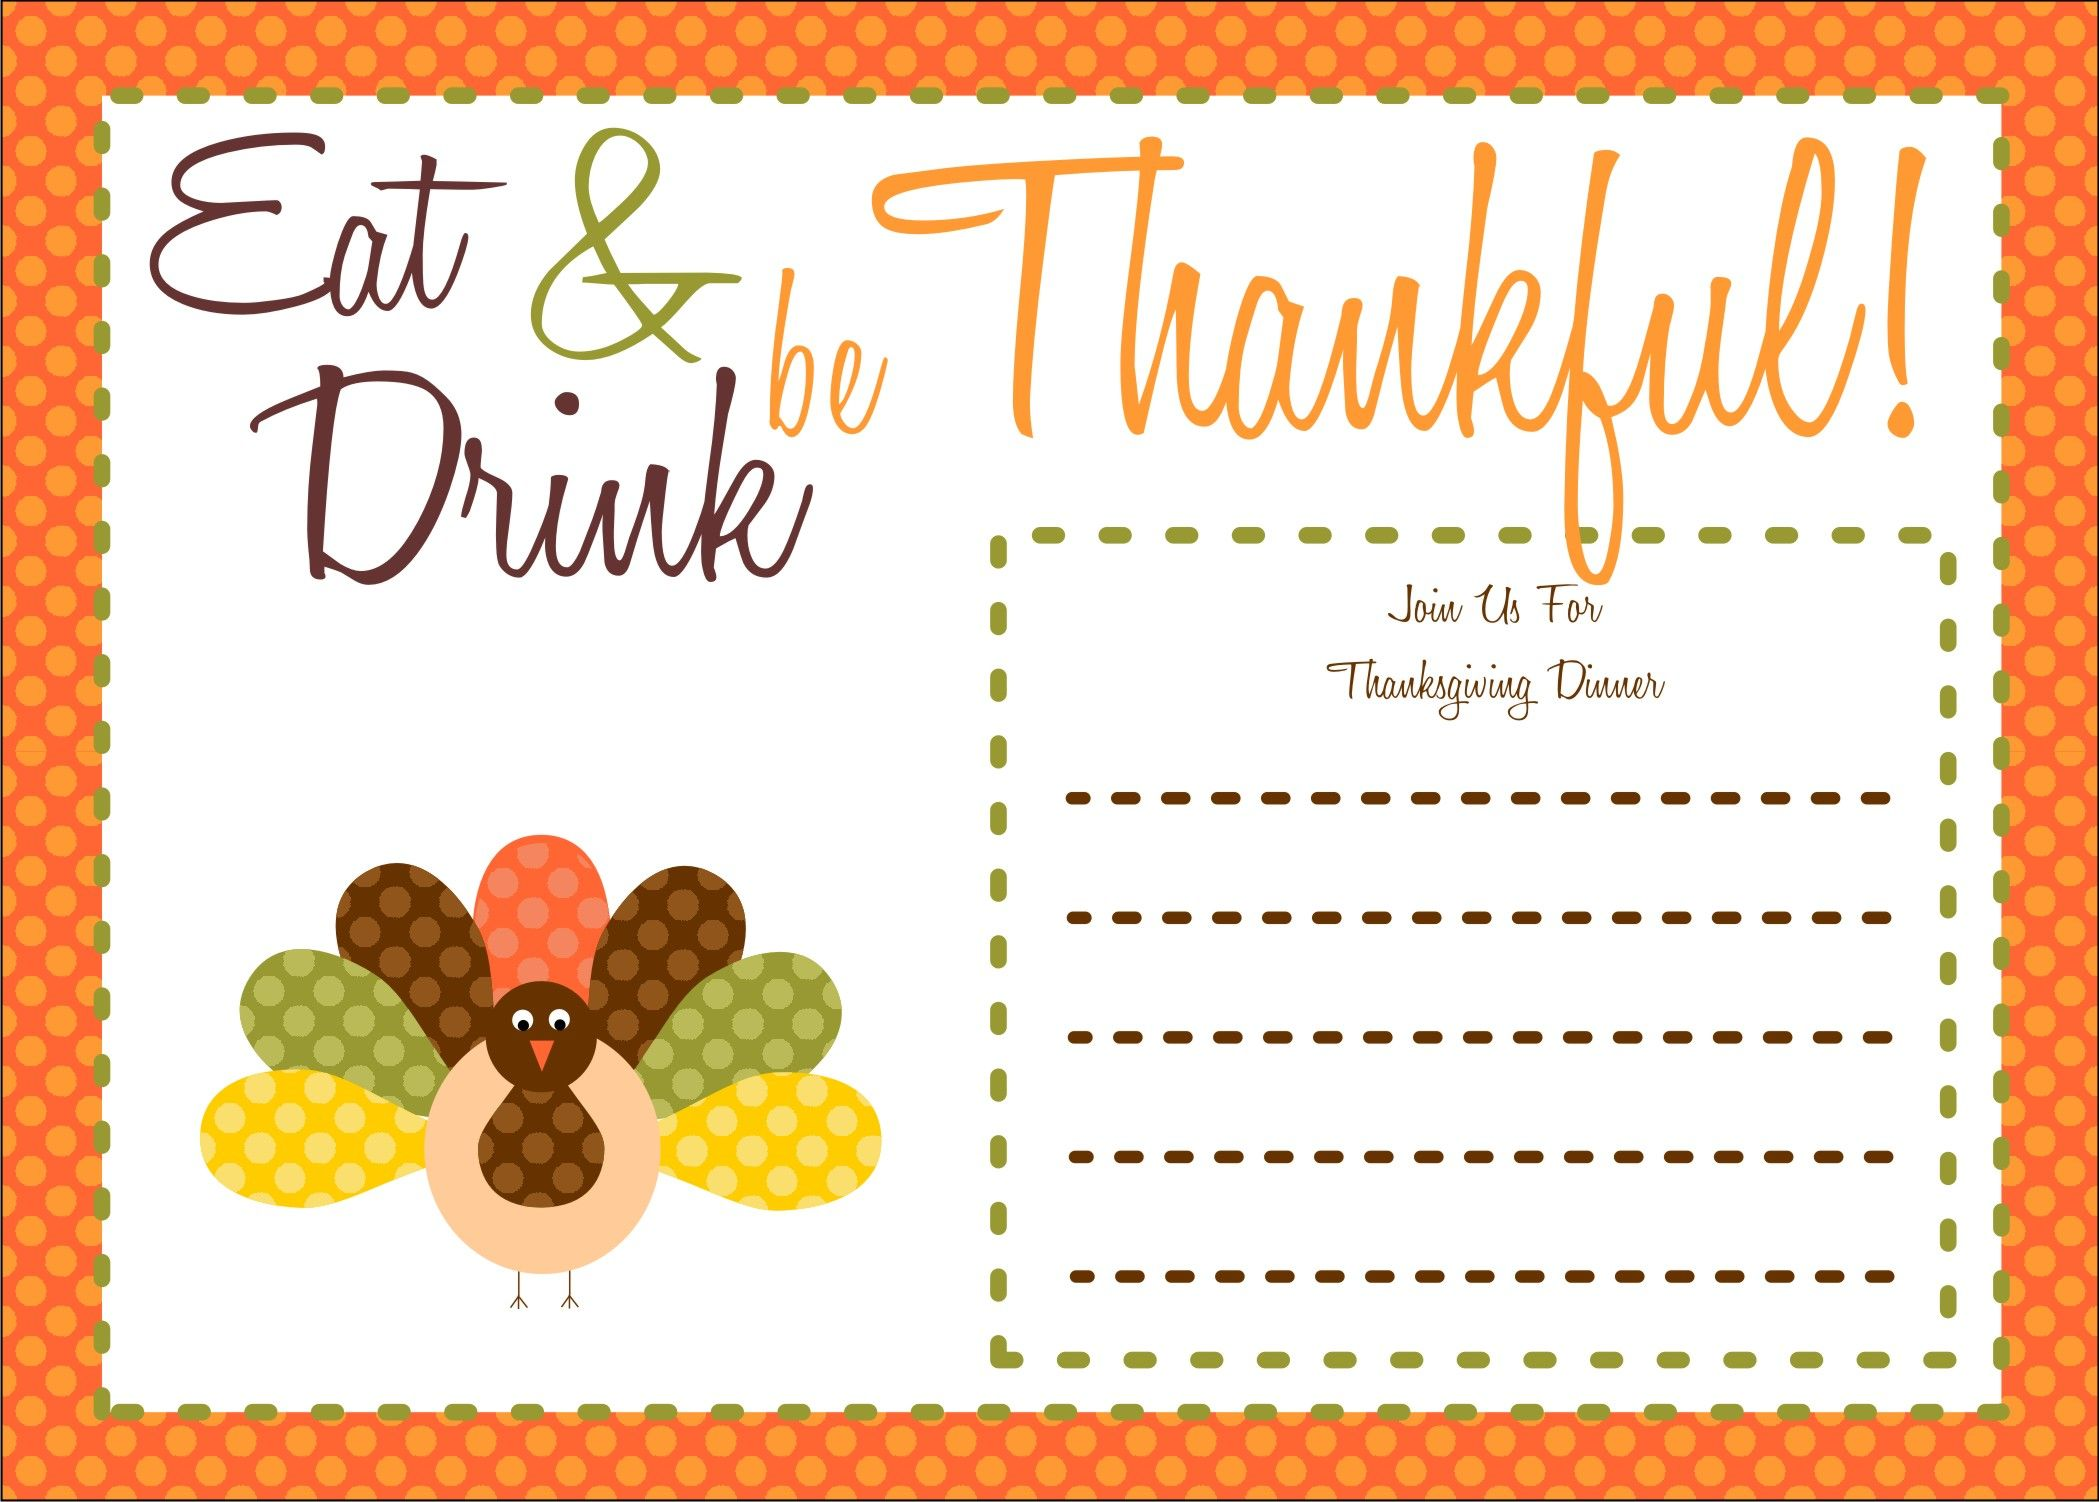 FREE Thanksgiving Printables From The Party Bakery Thanksgiving - Thanksgiving party invitation templates